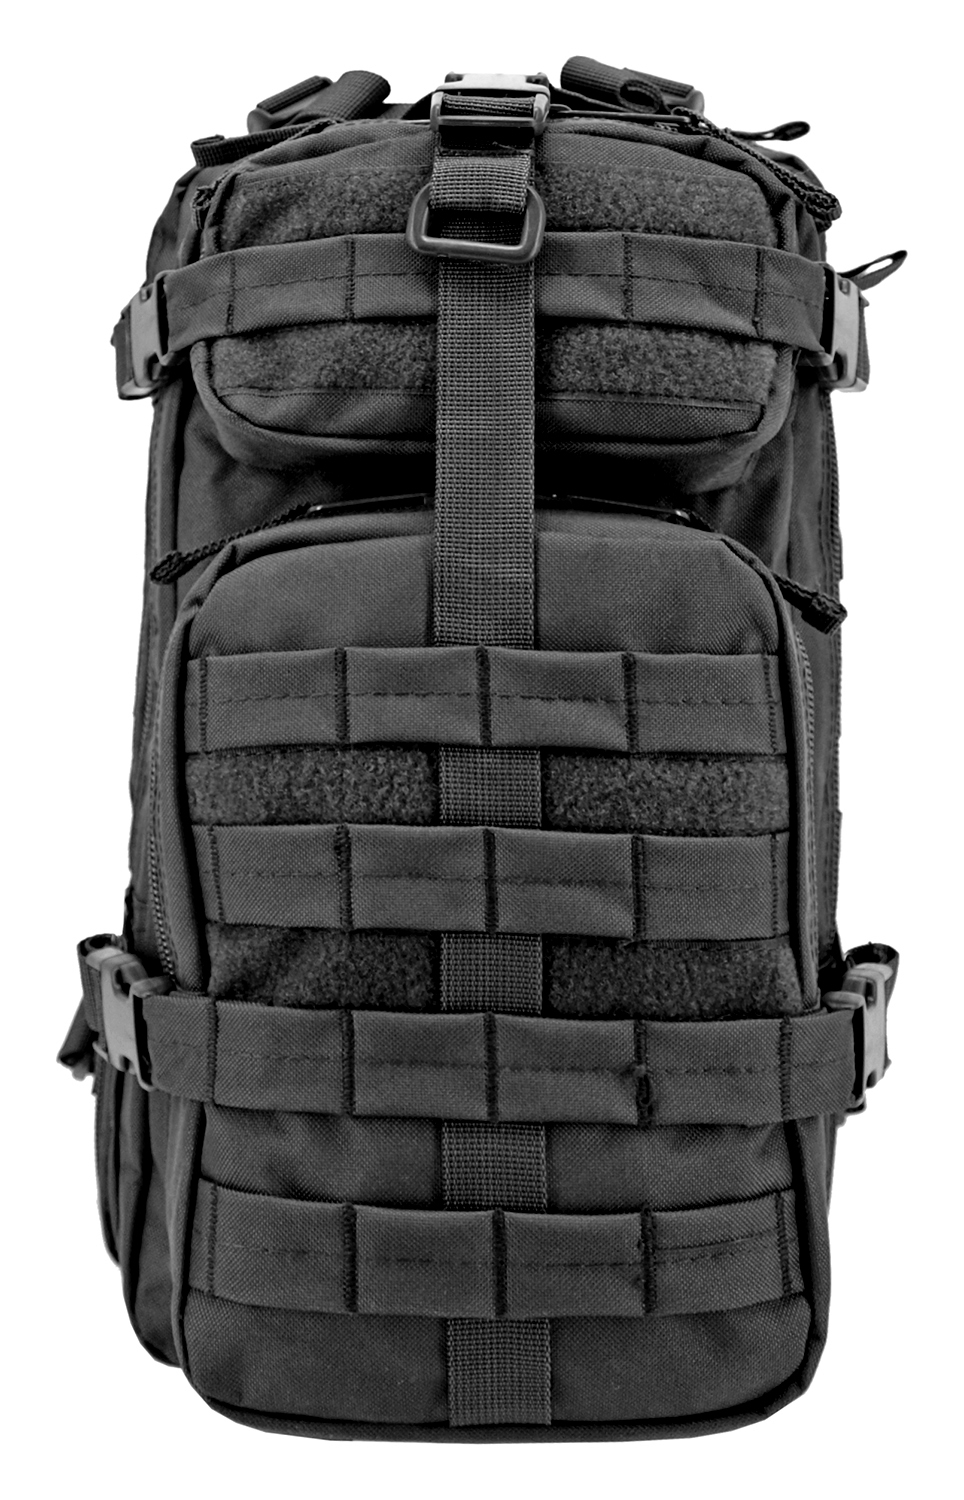 Tactical Assault Backpack - Black